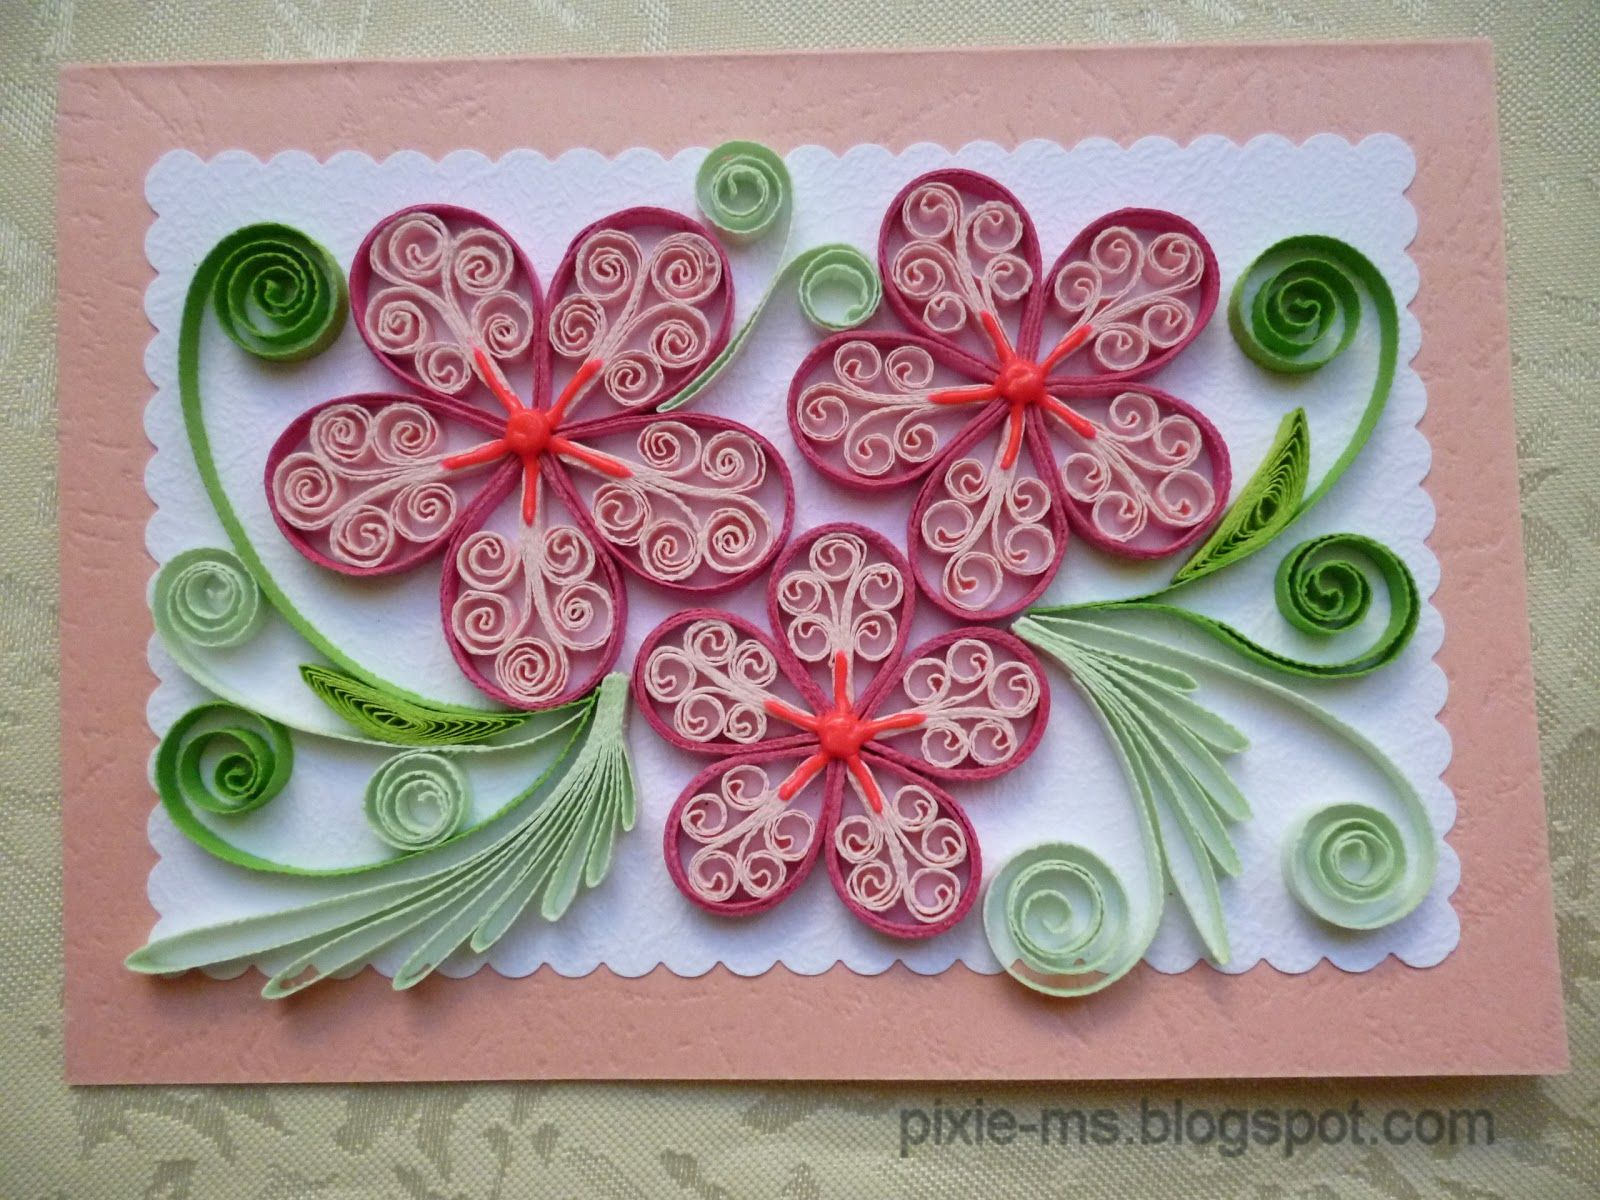 quilling flowers - Bing Images